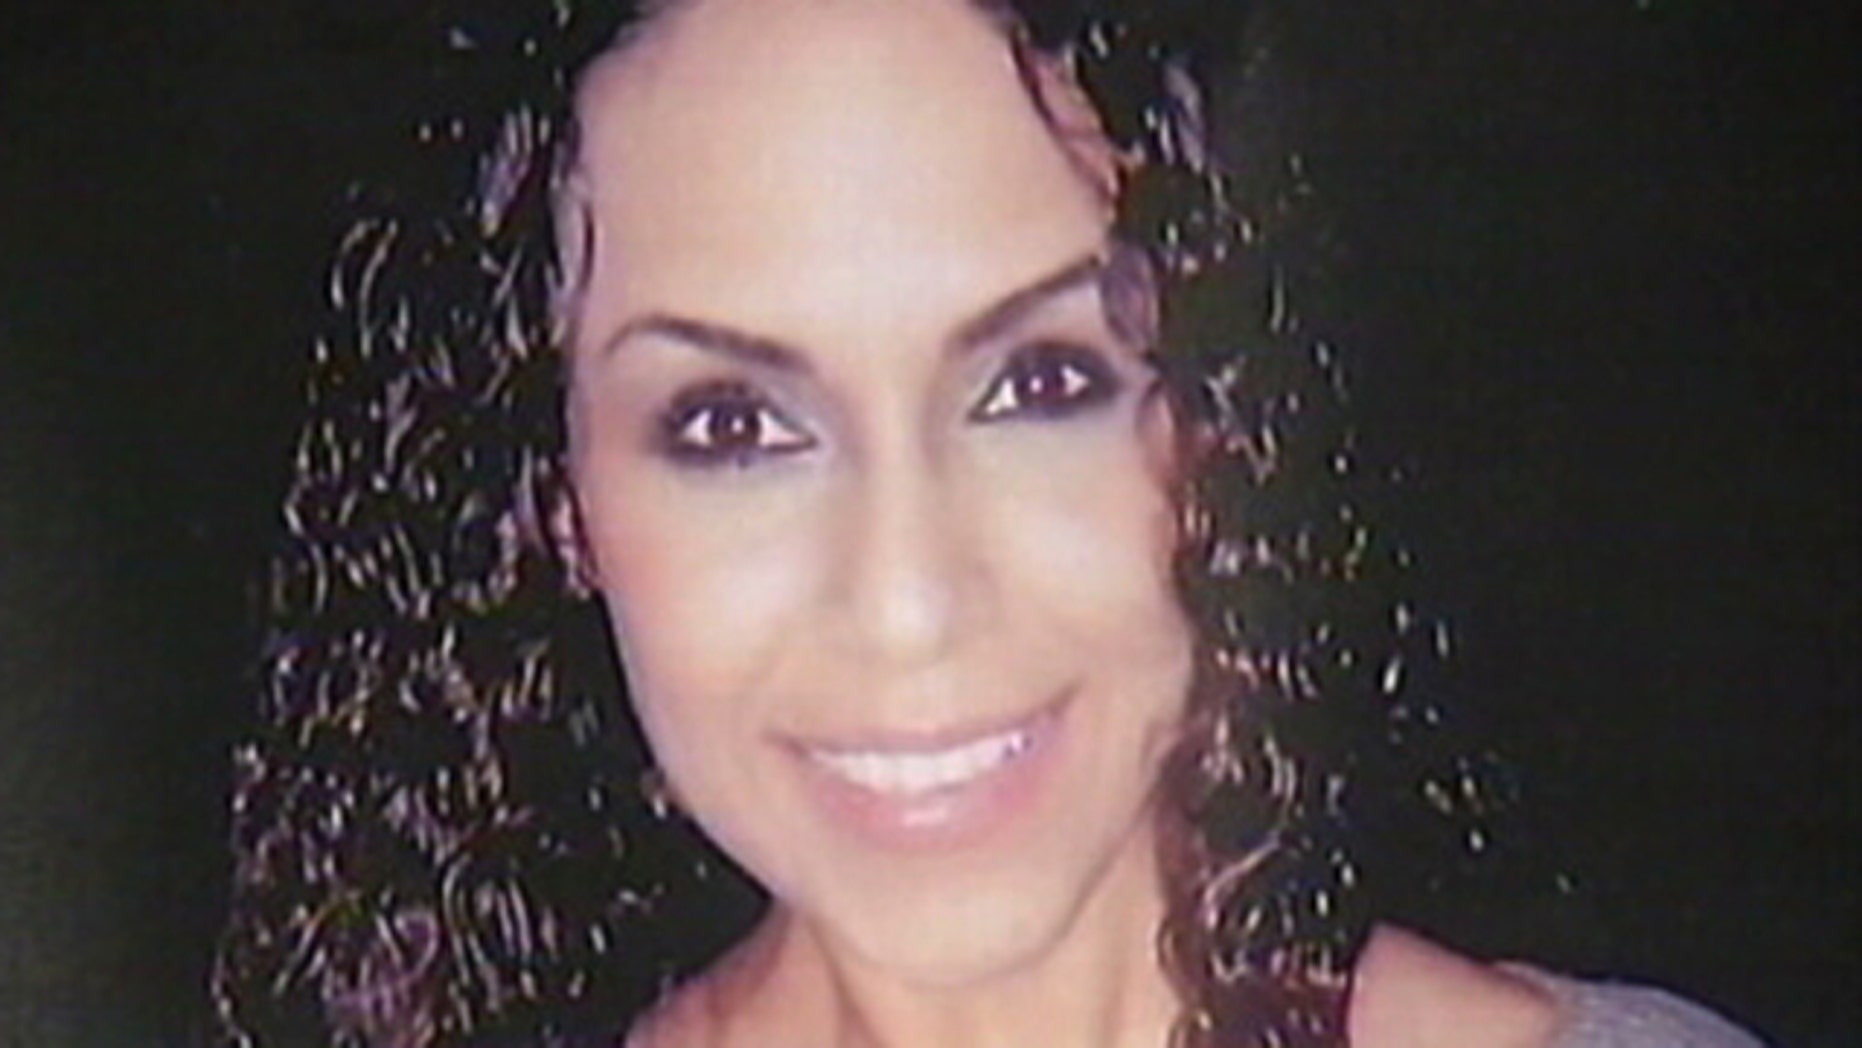 This undated photo, provided by Fox affiliate WNYW-TV, shows 25-year-old Laura Garza.